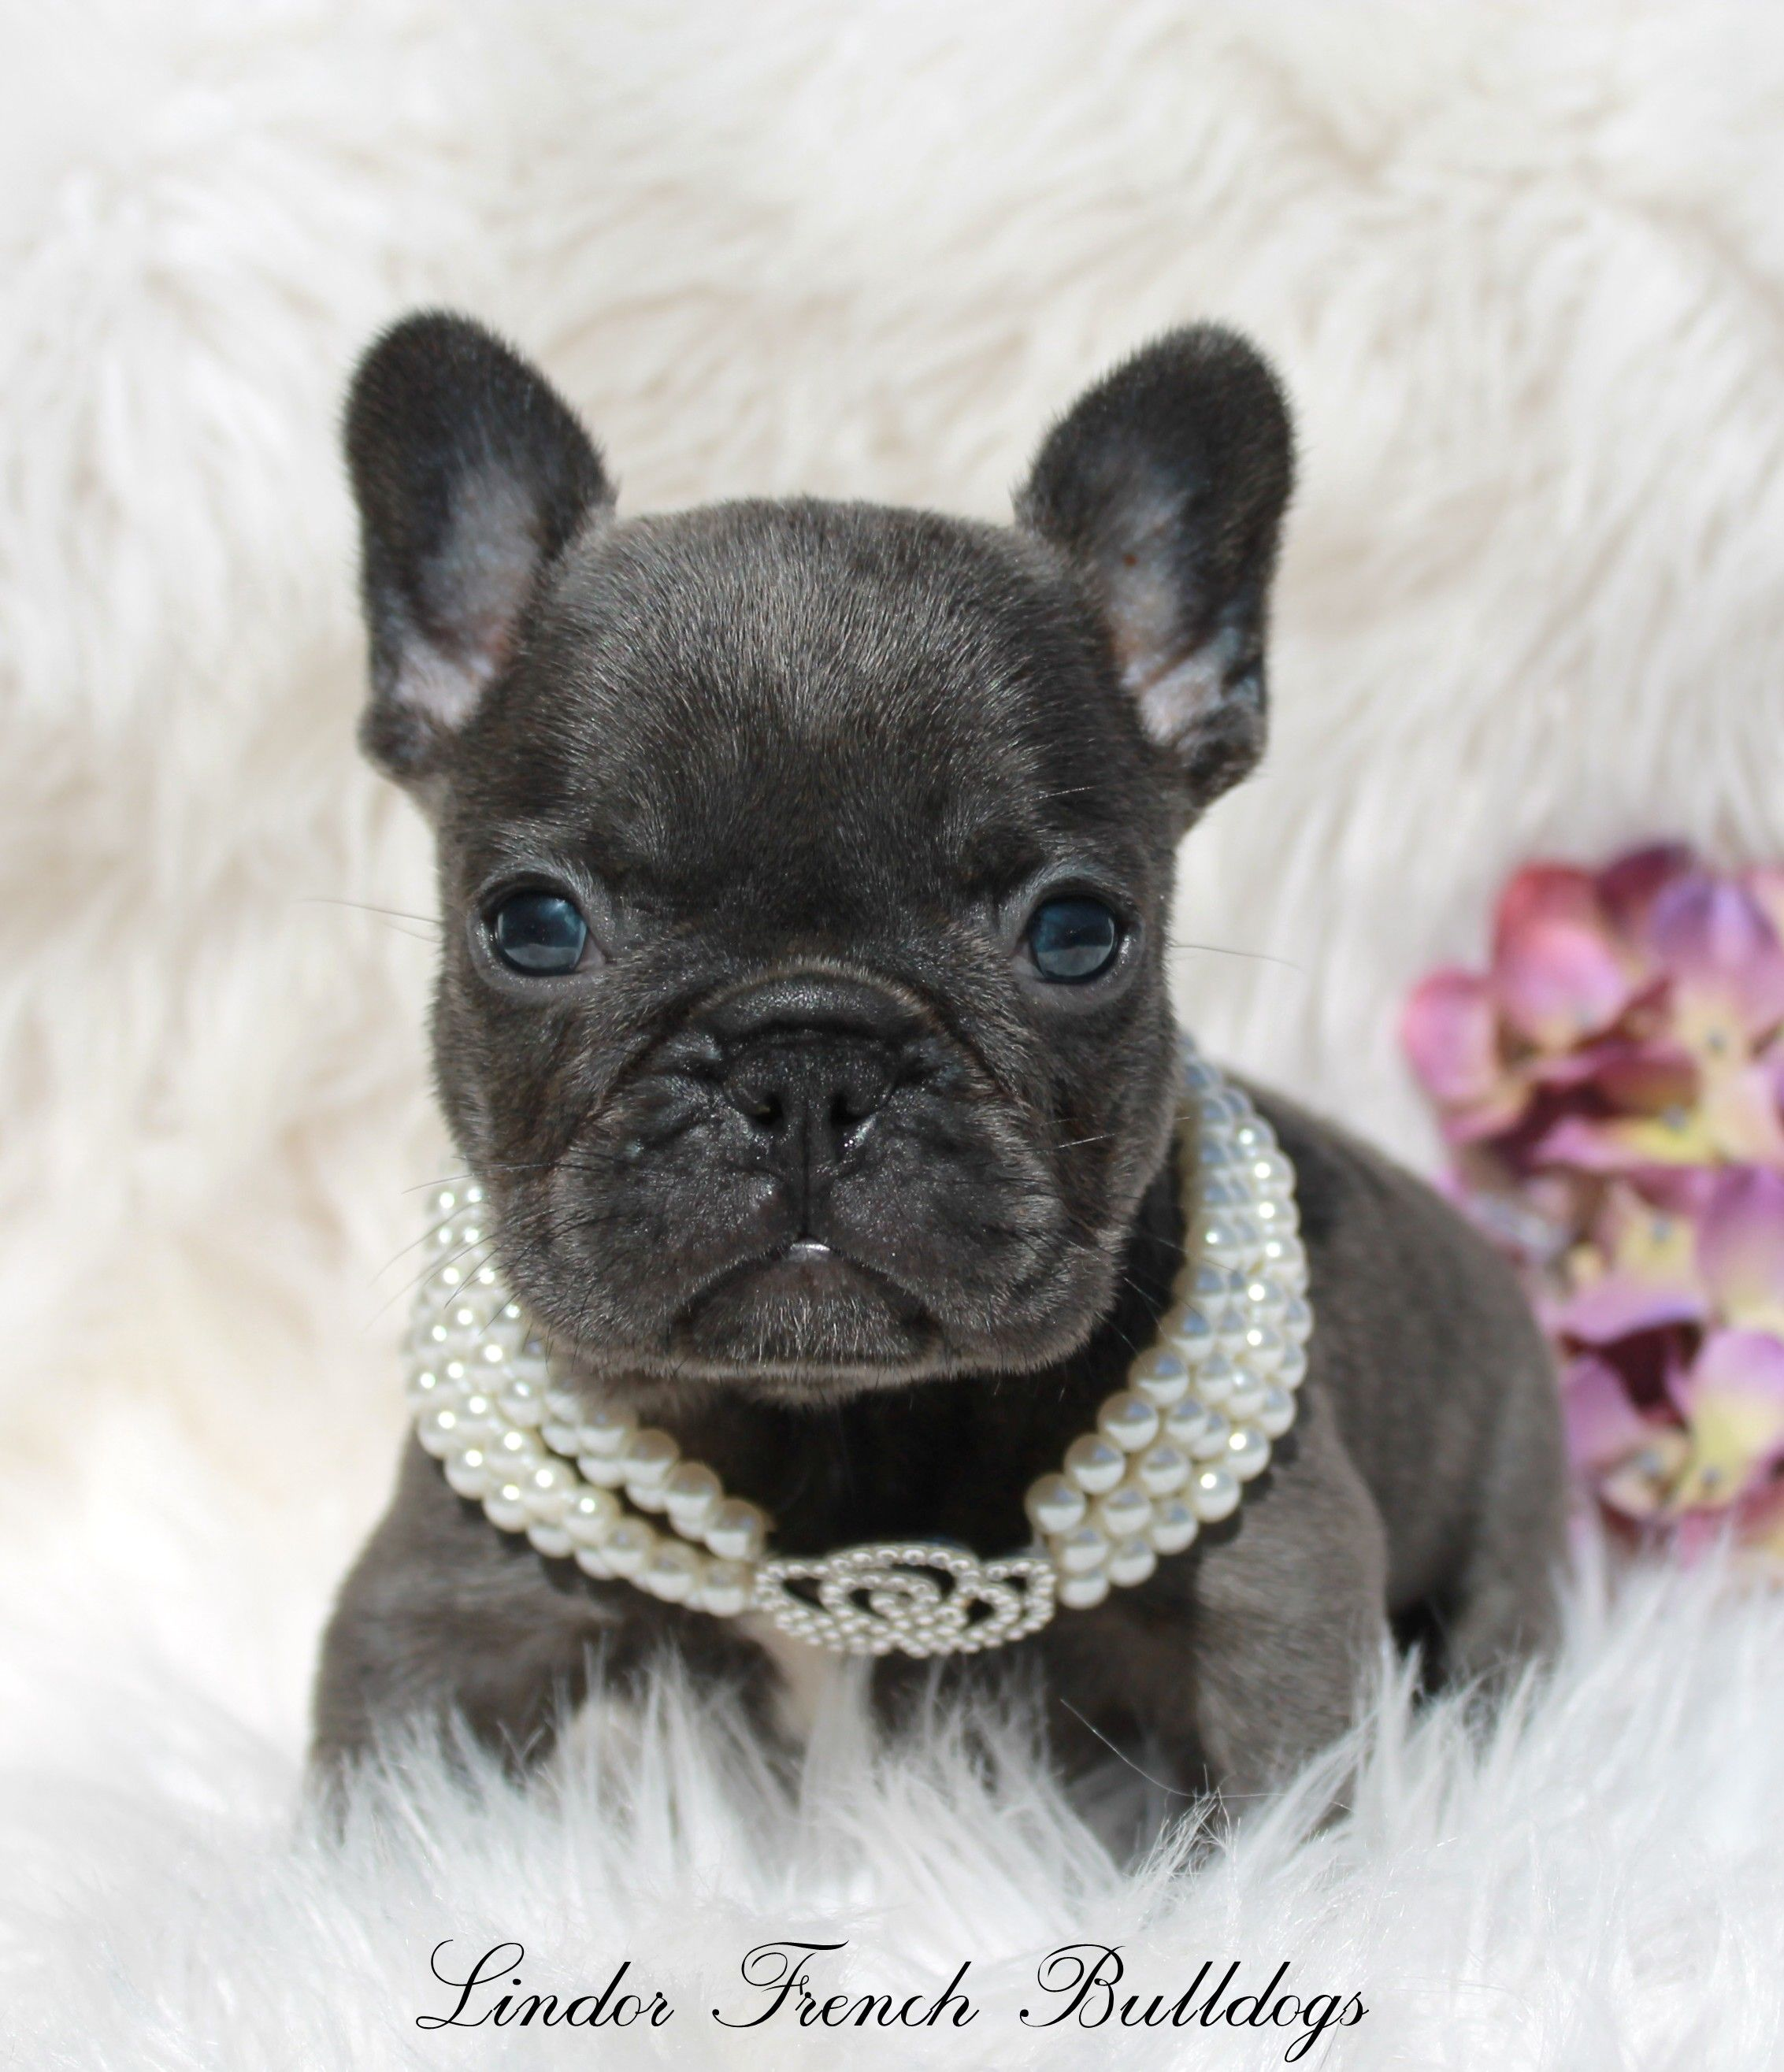 Home Lindor French Bulldogs Frenchies For Sale All Colors Bulldog Puppies For Sale French Bulldog Blue Blue French Bulldog Puppies